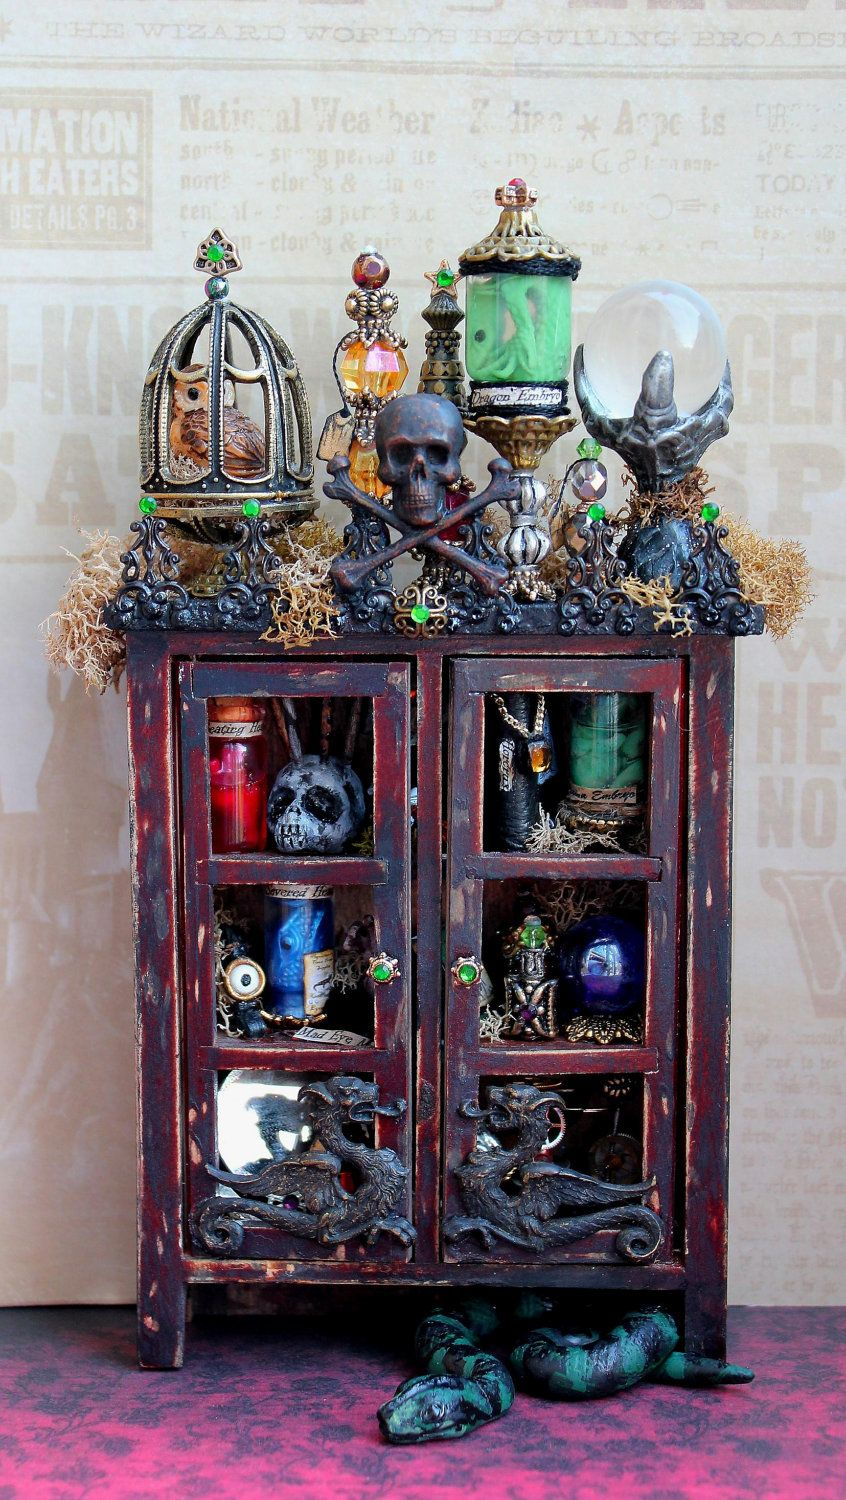 Dollhouse Miniature Harry Potter Death Eater Cabinet With Nagini Snake   Scale Layaway Available   Via Etsy